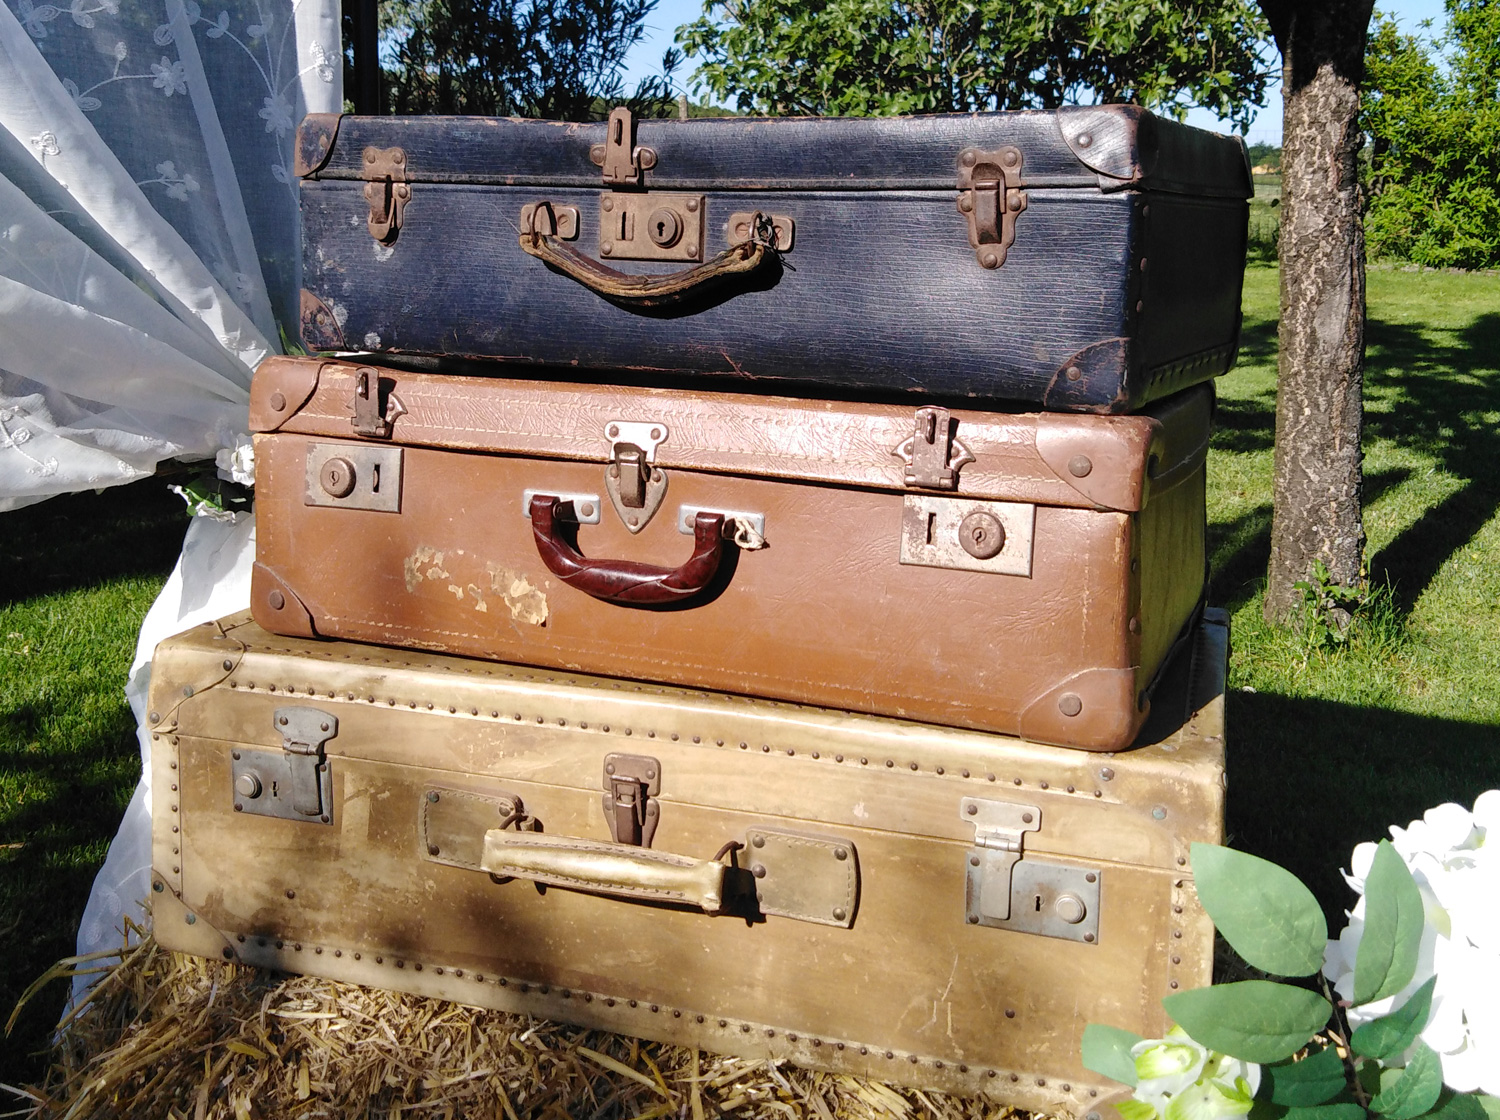 Couverts-compagnie-location-valise